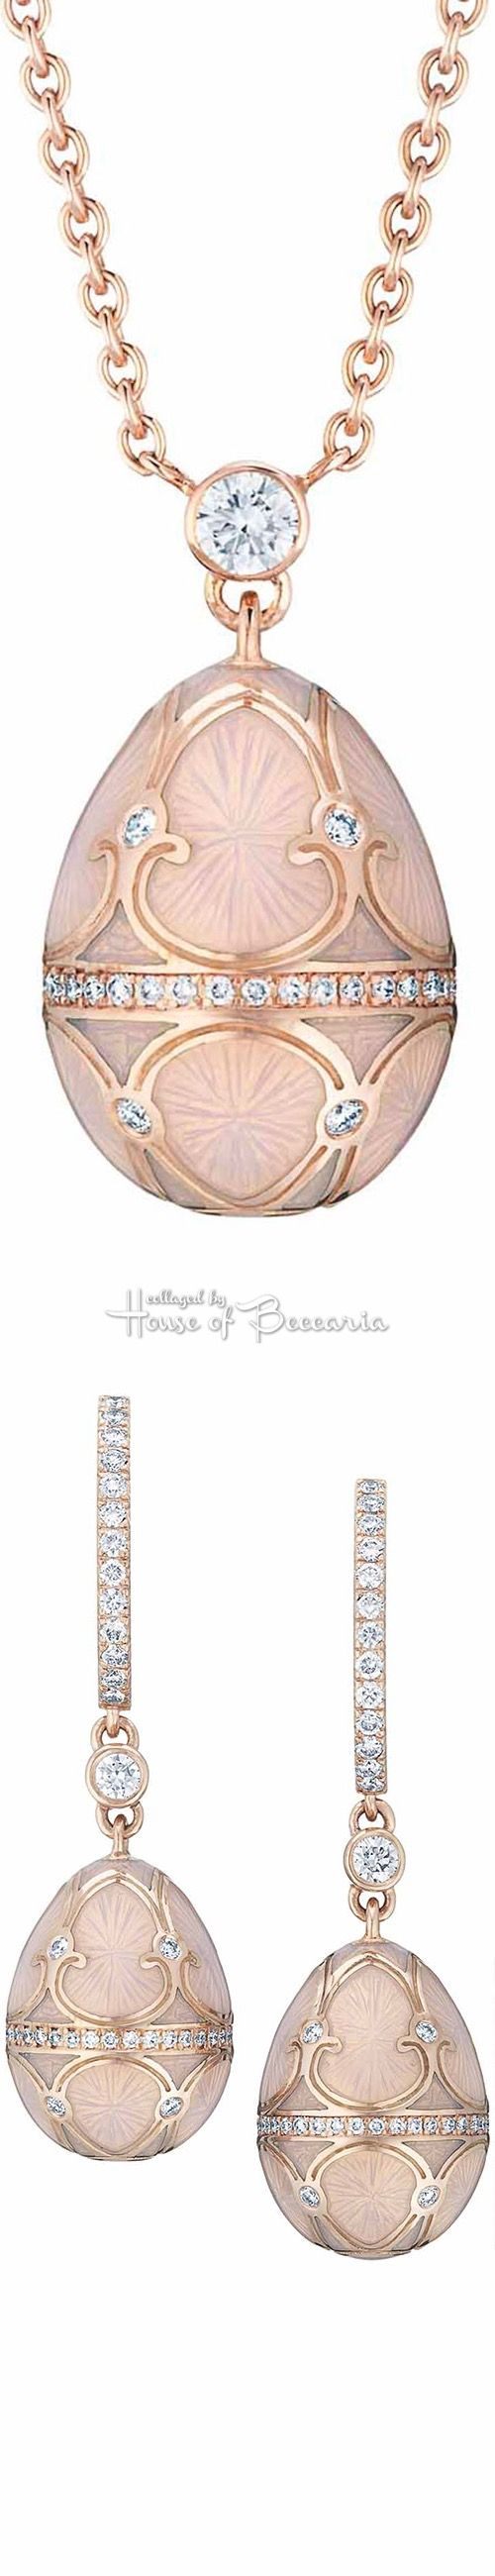 Rosamaria G Frangini | High Pink Jewellery | Fabergé Les Palais Tsarskoye Selo Empereur Rosé Egg Pendant & Drop Earrings From The Heritage Collection. White Diamonds and Pink Guilloché Enamel Set in 18 carat Rose and Yellow Gold | House of Beccaria